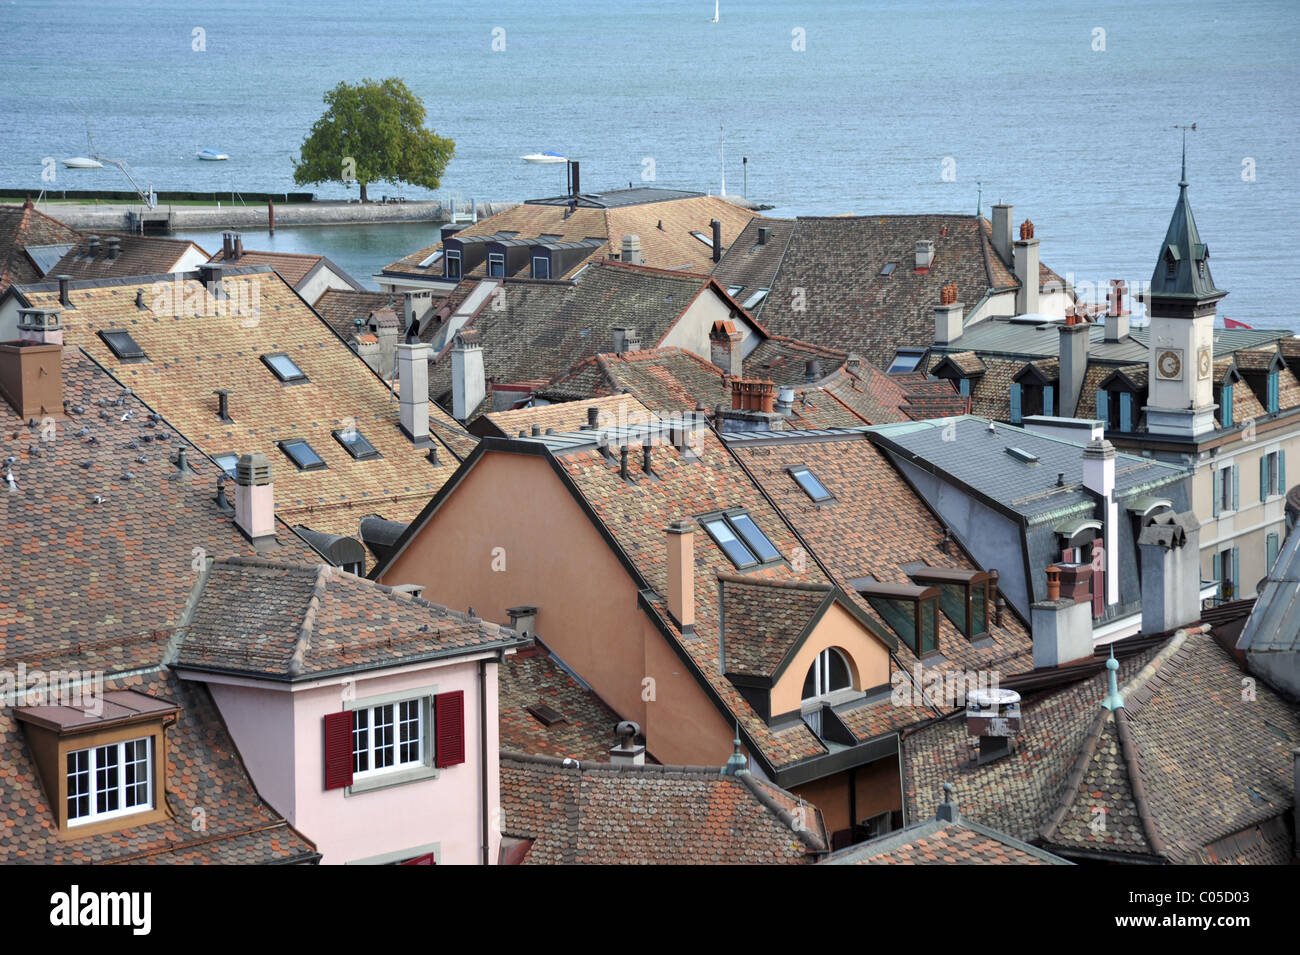 The town of Nyon in Switzerland, situated on the banks of Lake Geneva - Stock Image